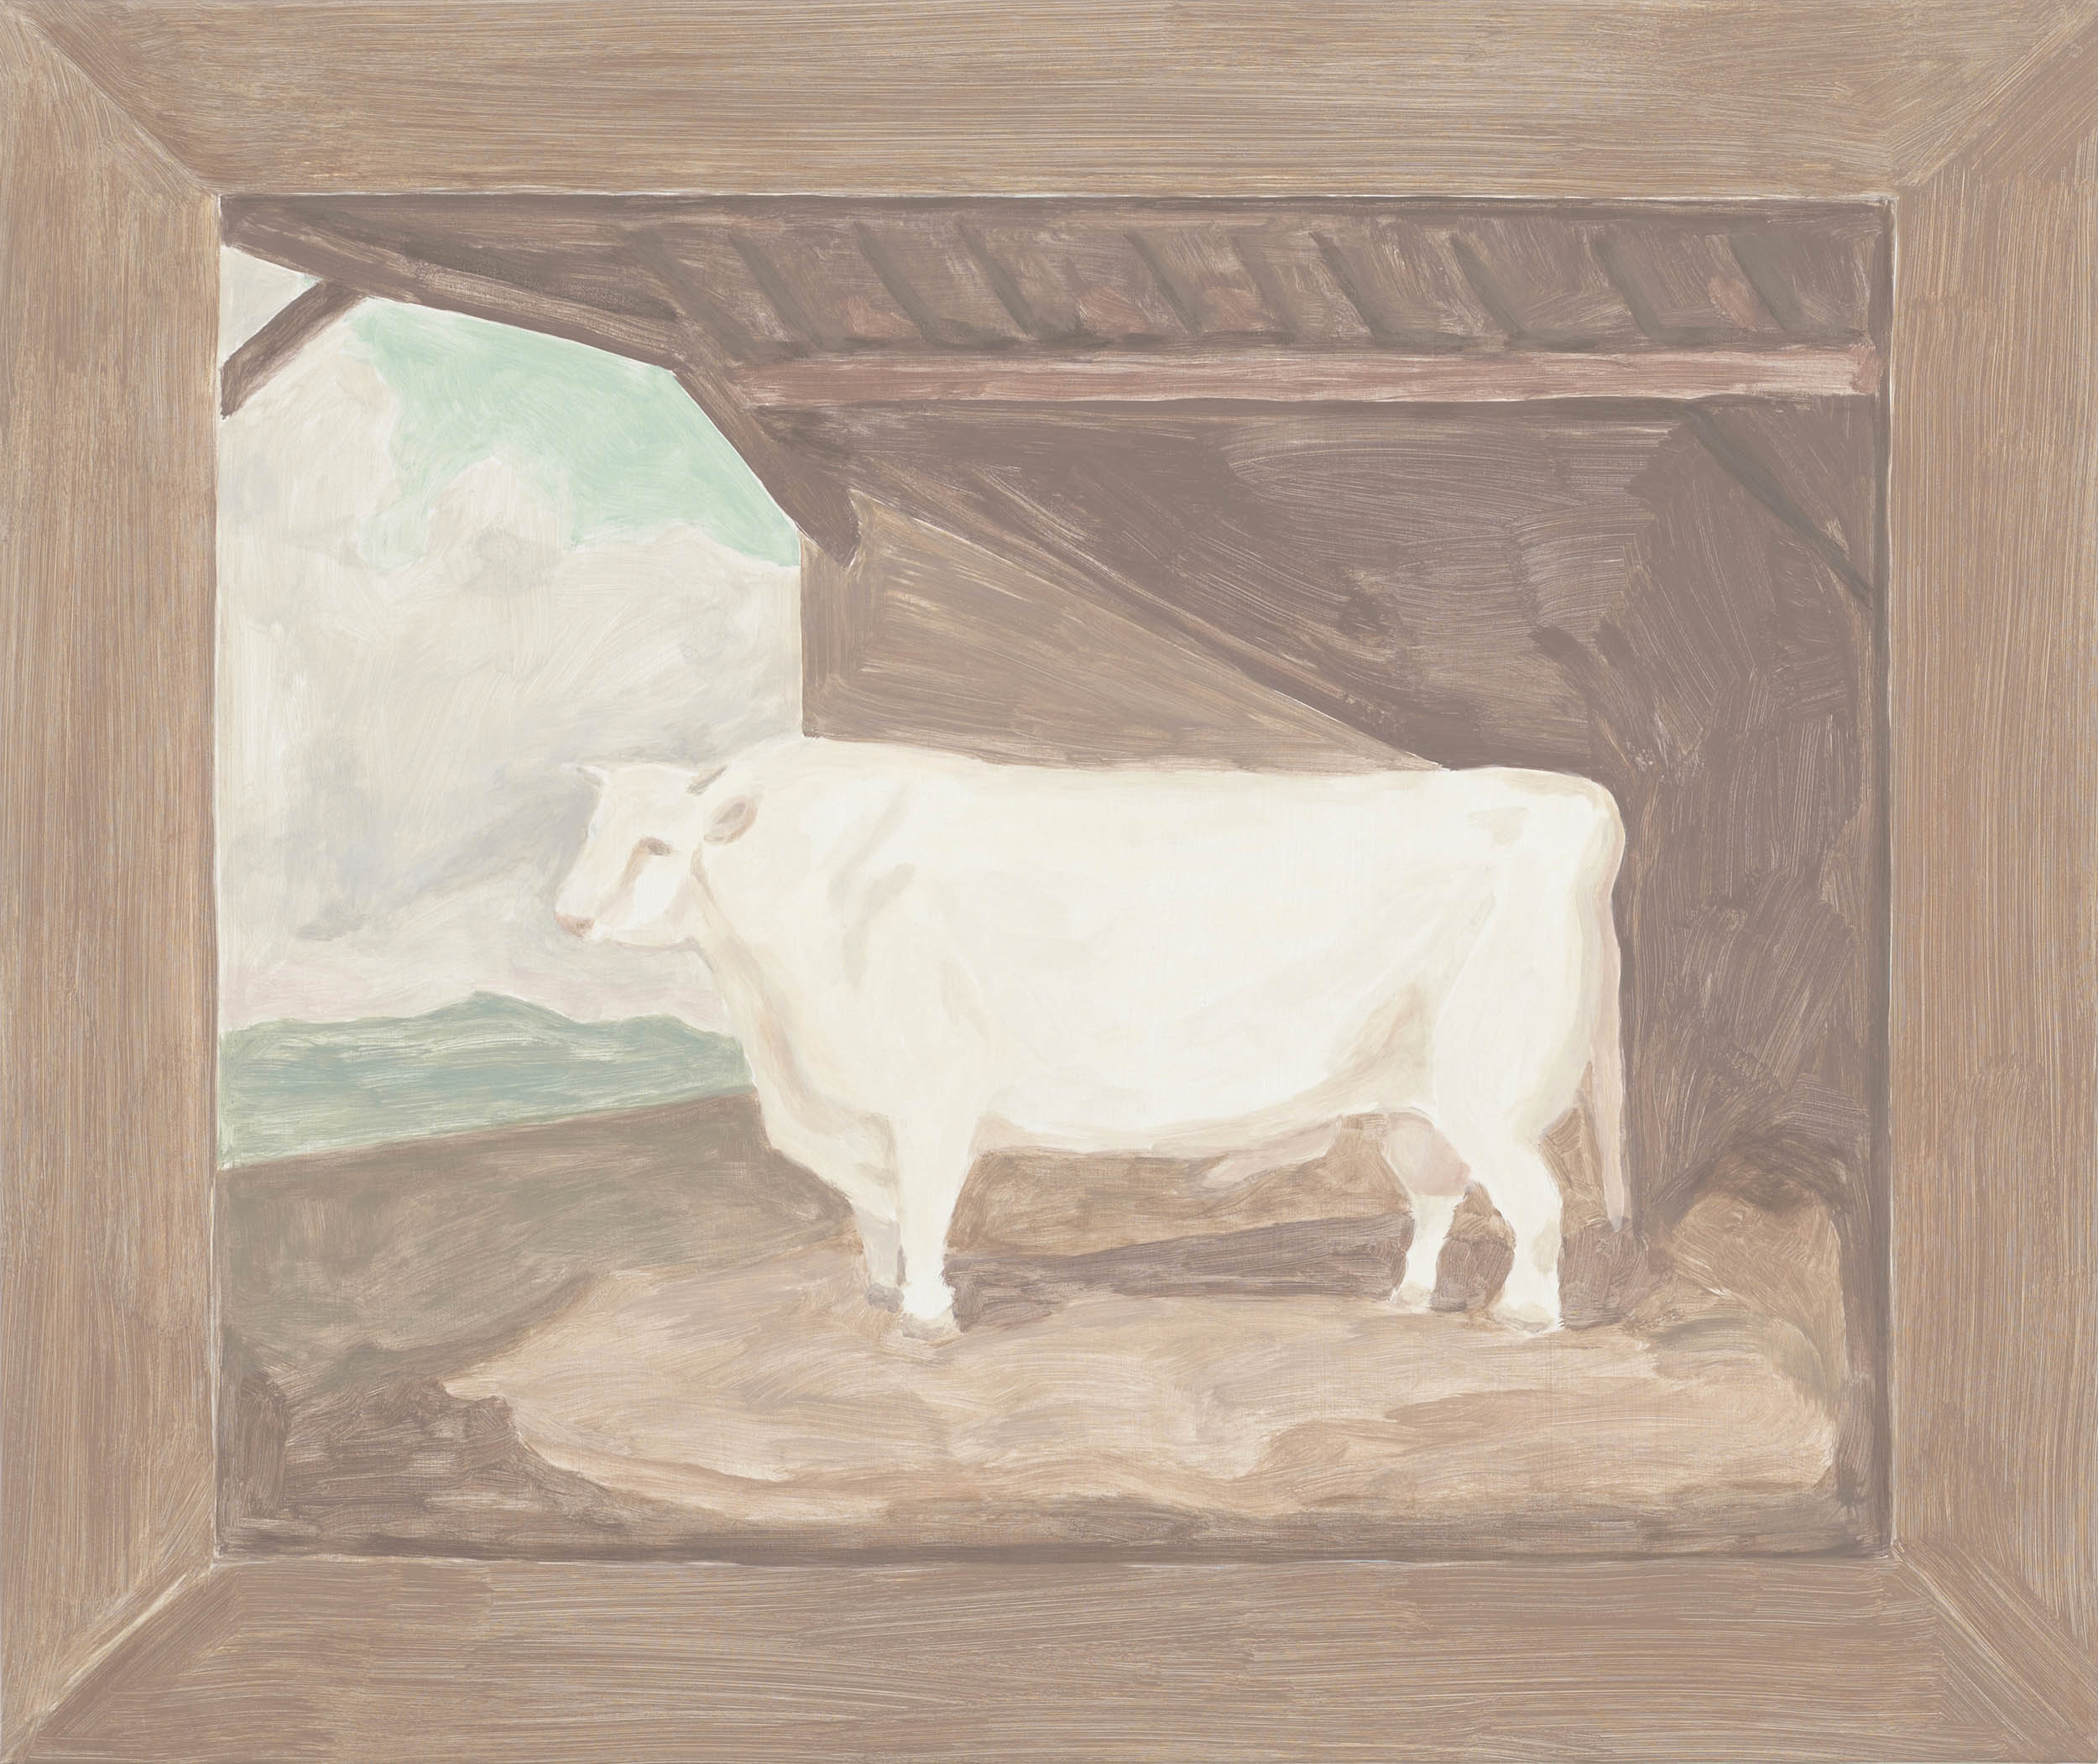 Framed Painting: Bull, acrylic on canvas over board, 29 x 34 1/2 inches, 2012.